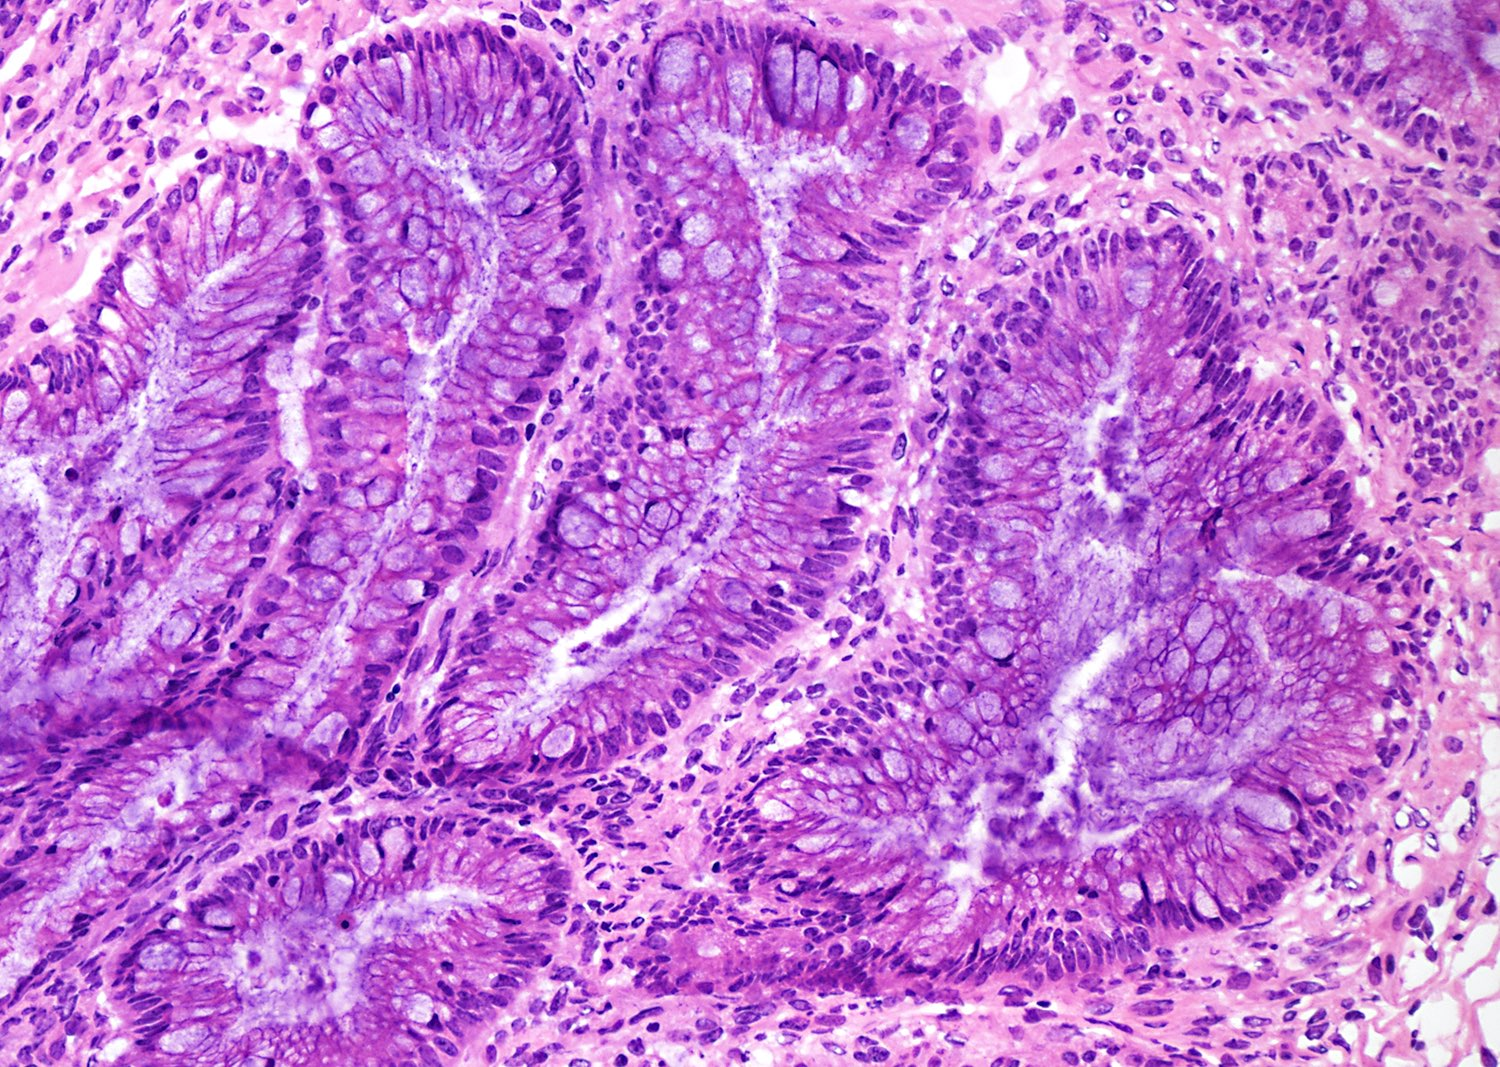 Intestinal type mutinous epithelium